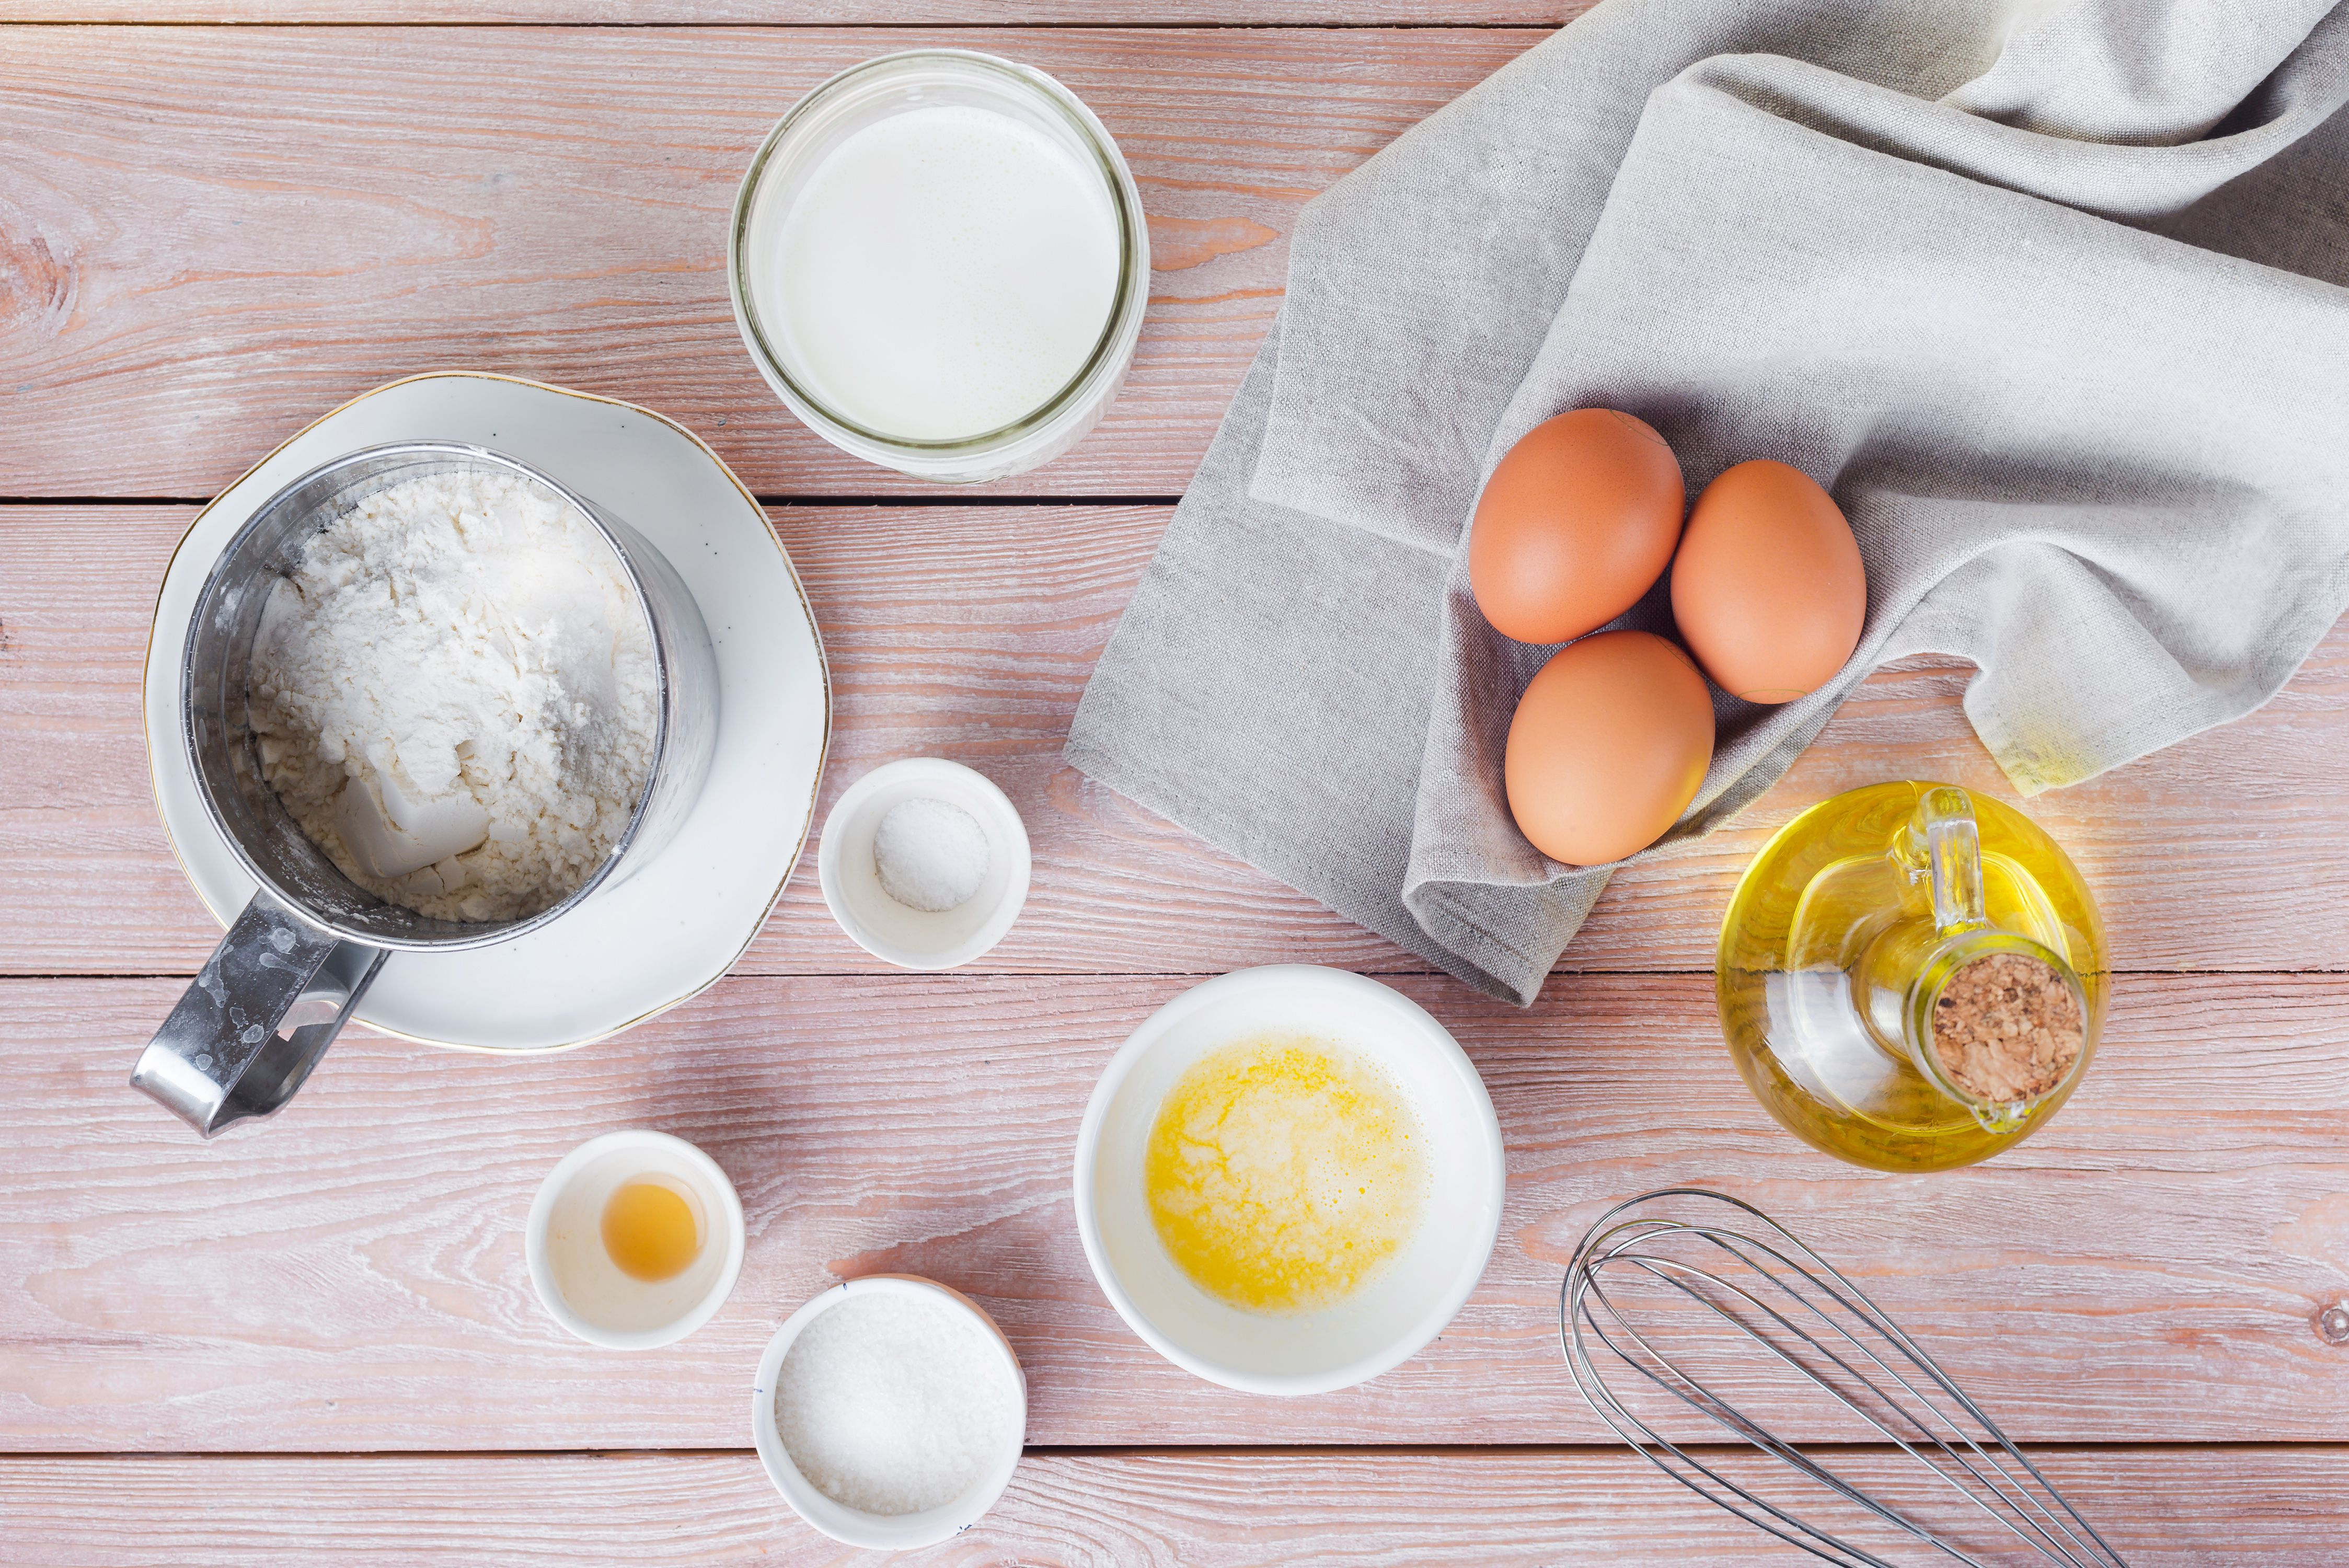 Ingredients for homemade crepe pareve